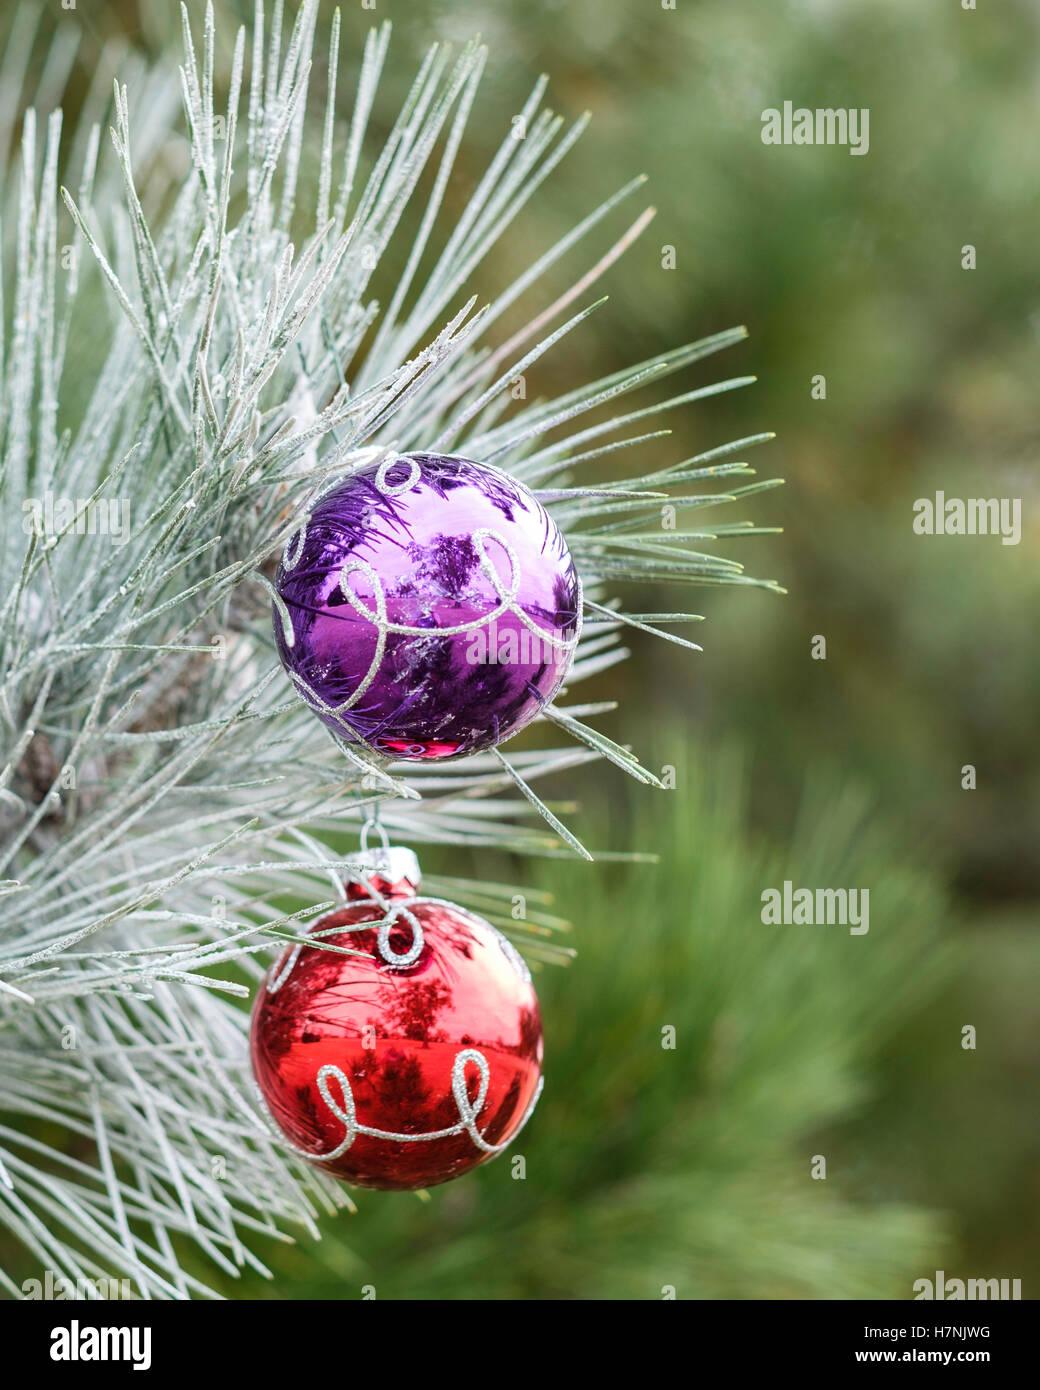 Frosted christmas ornaments - Stock Photo Two Colorful Glass Ball Christmas Ornaments On A Frosted Pine Bough